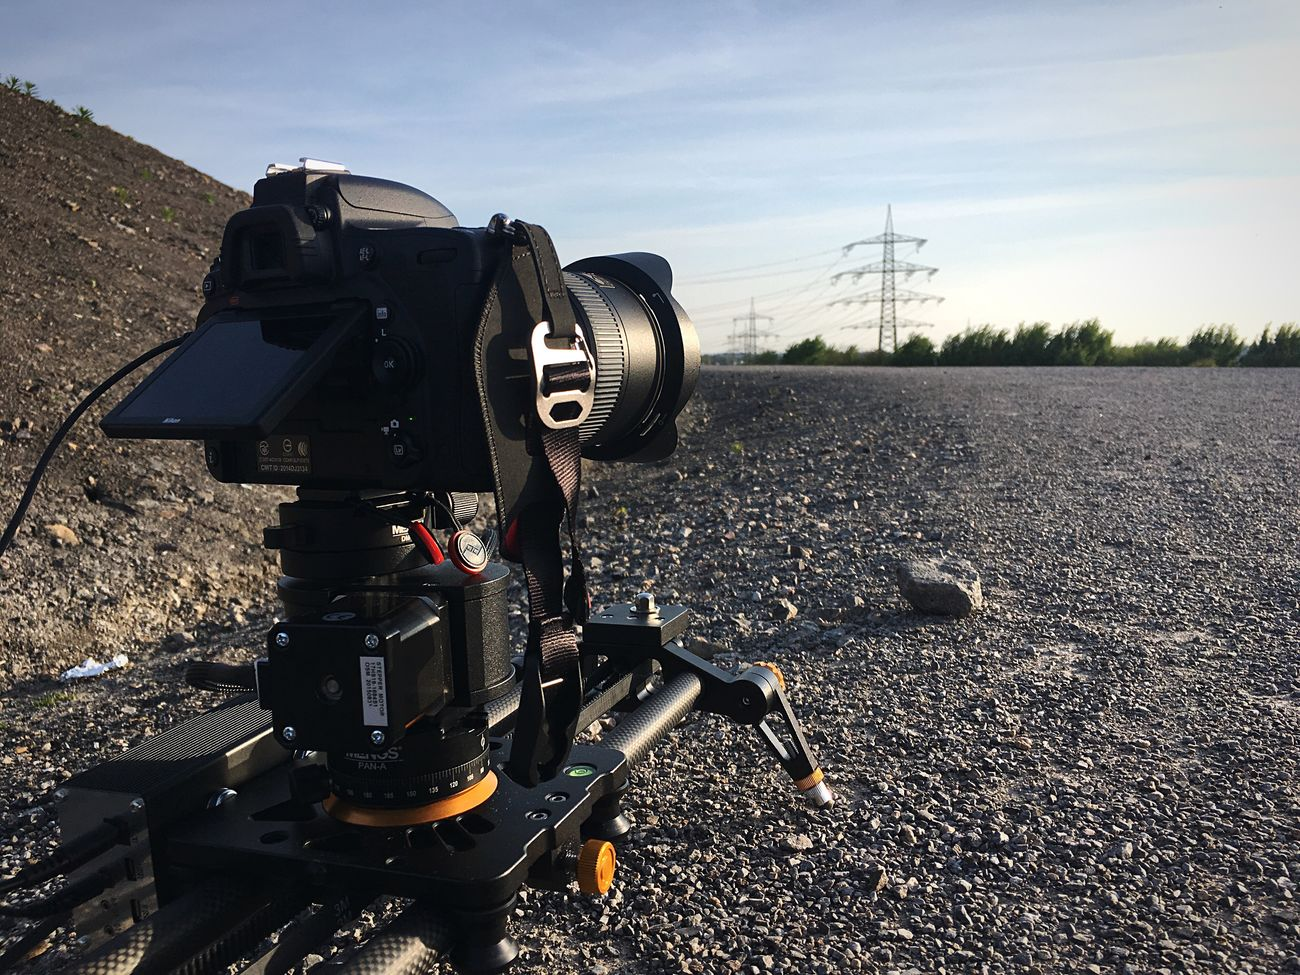 Pocketslider PT-Pro with Nikon D750 shooting Motion Timelapse. No People Day Technology Road Camera - Photographic Equipment Photography Themes Outdoors Sky Close-up